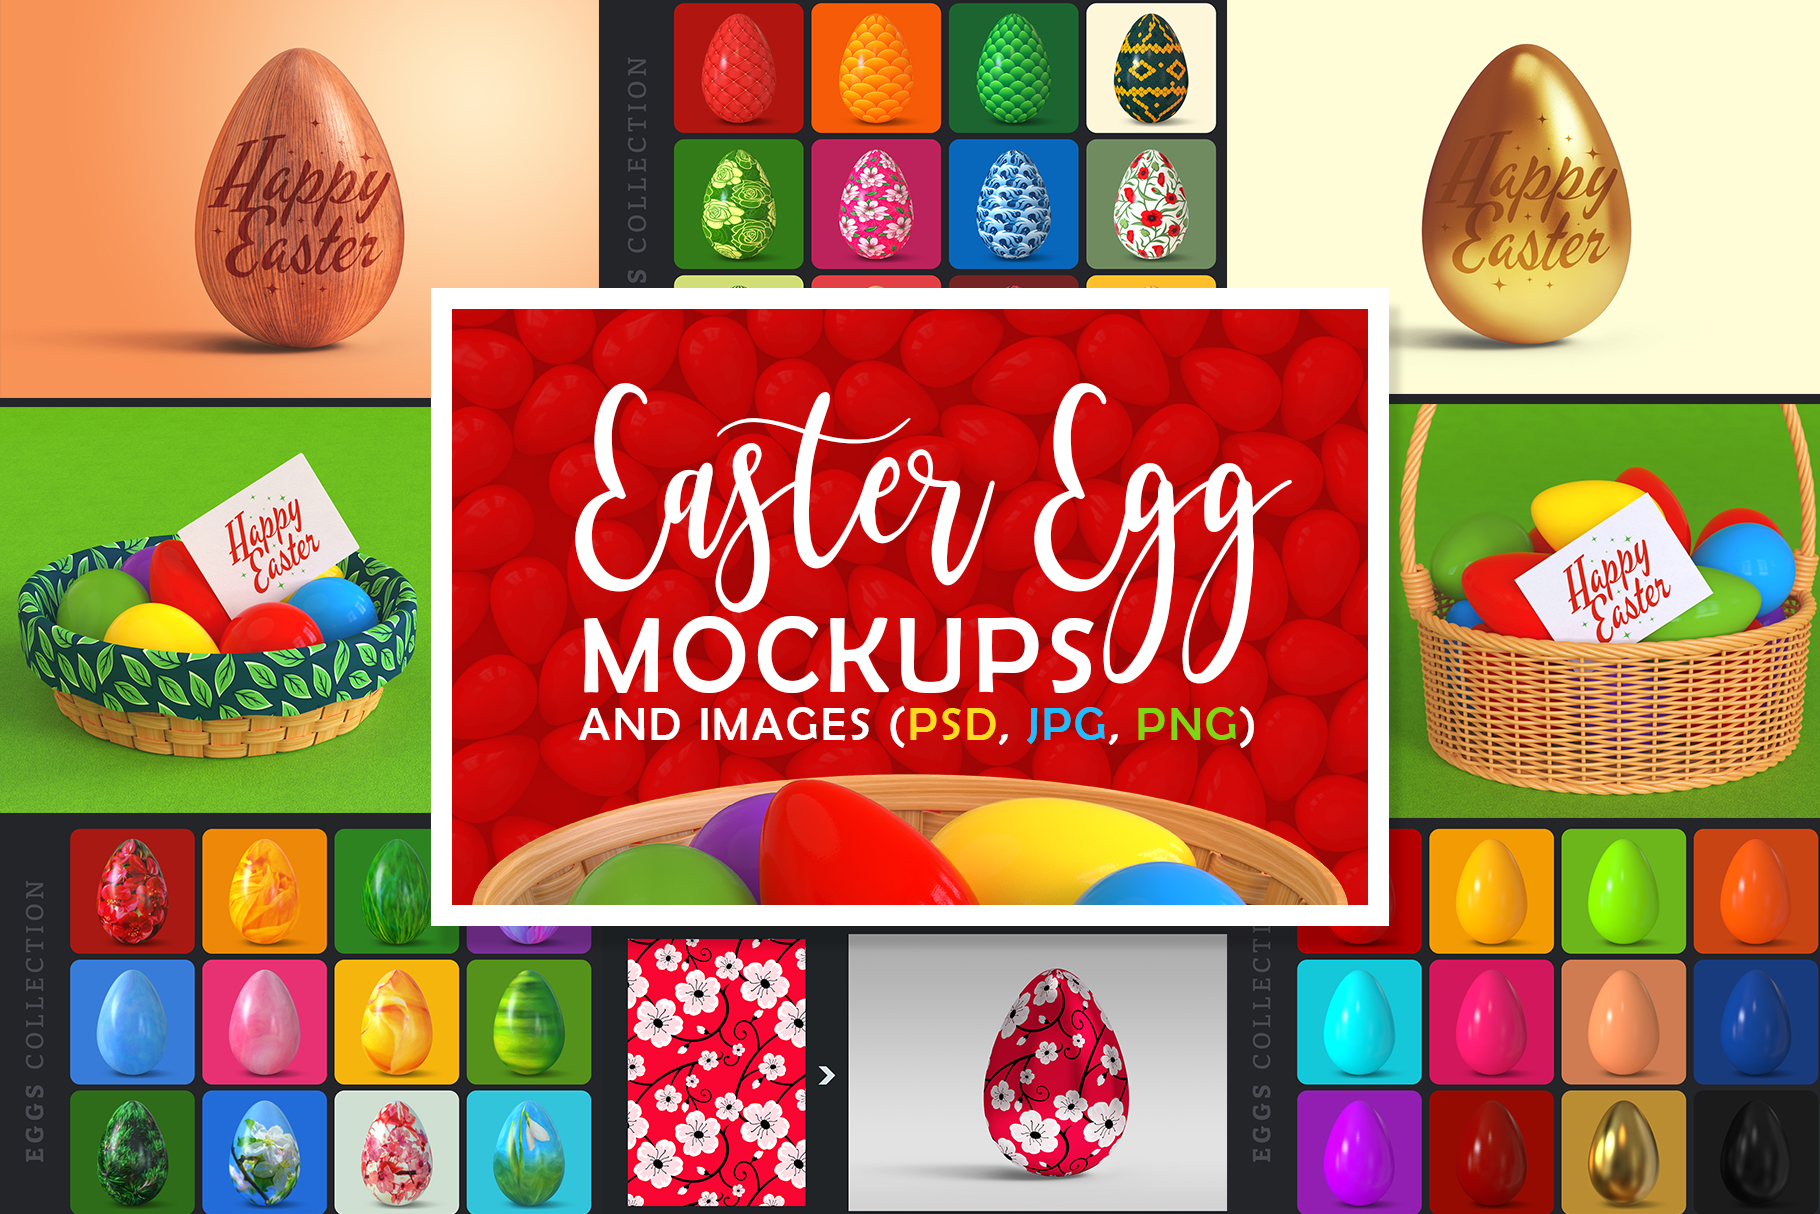 Easter Egg Mockups and Images example image 1